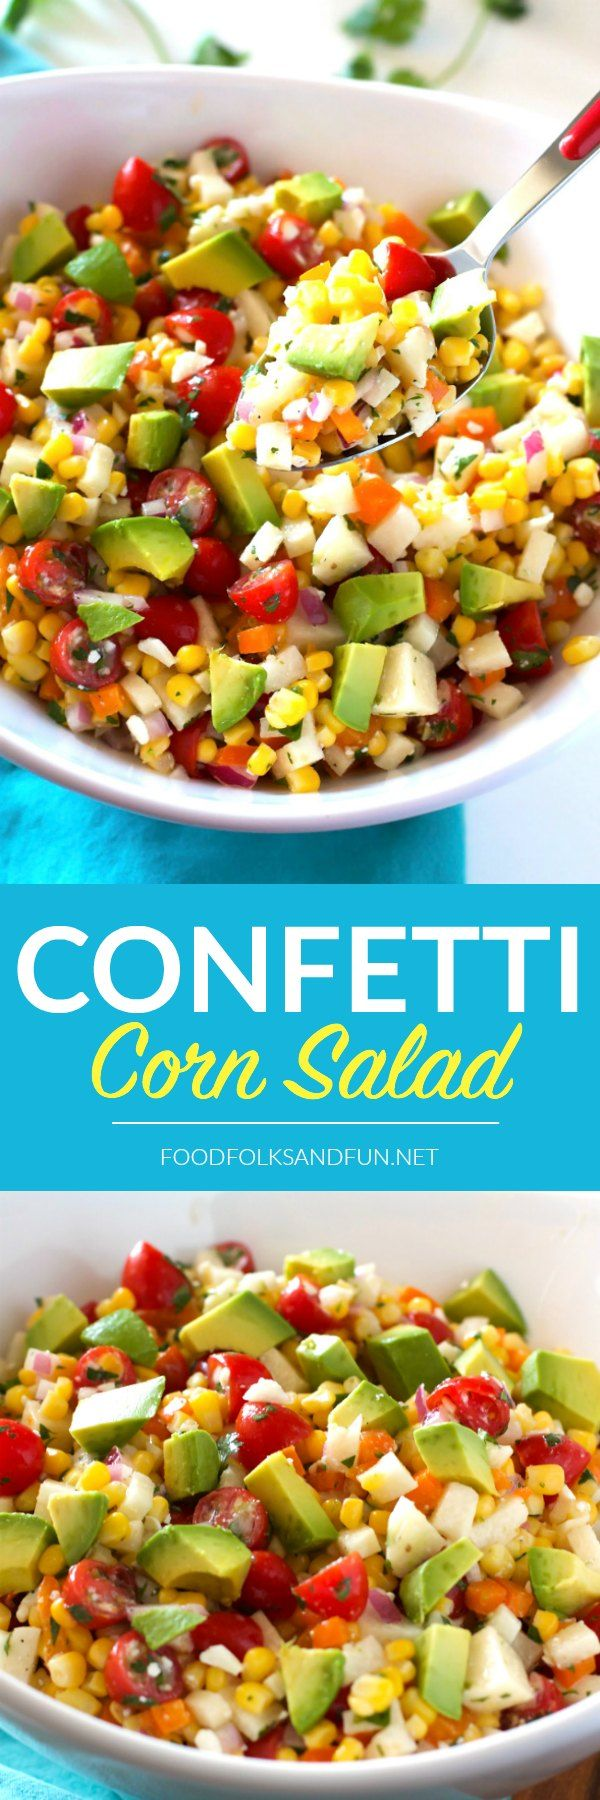 This Confetti Corn Salad is a refreshing, light side dish that's perfect for…